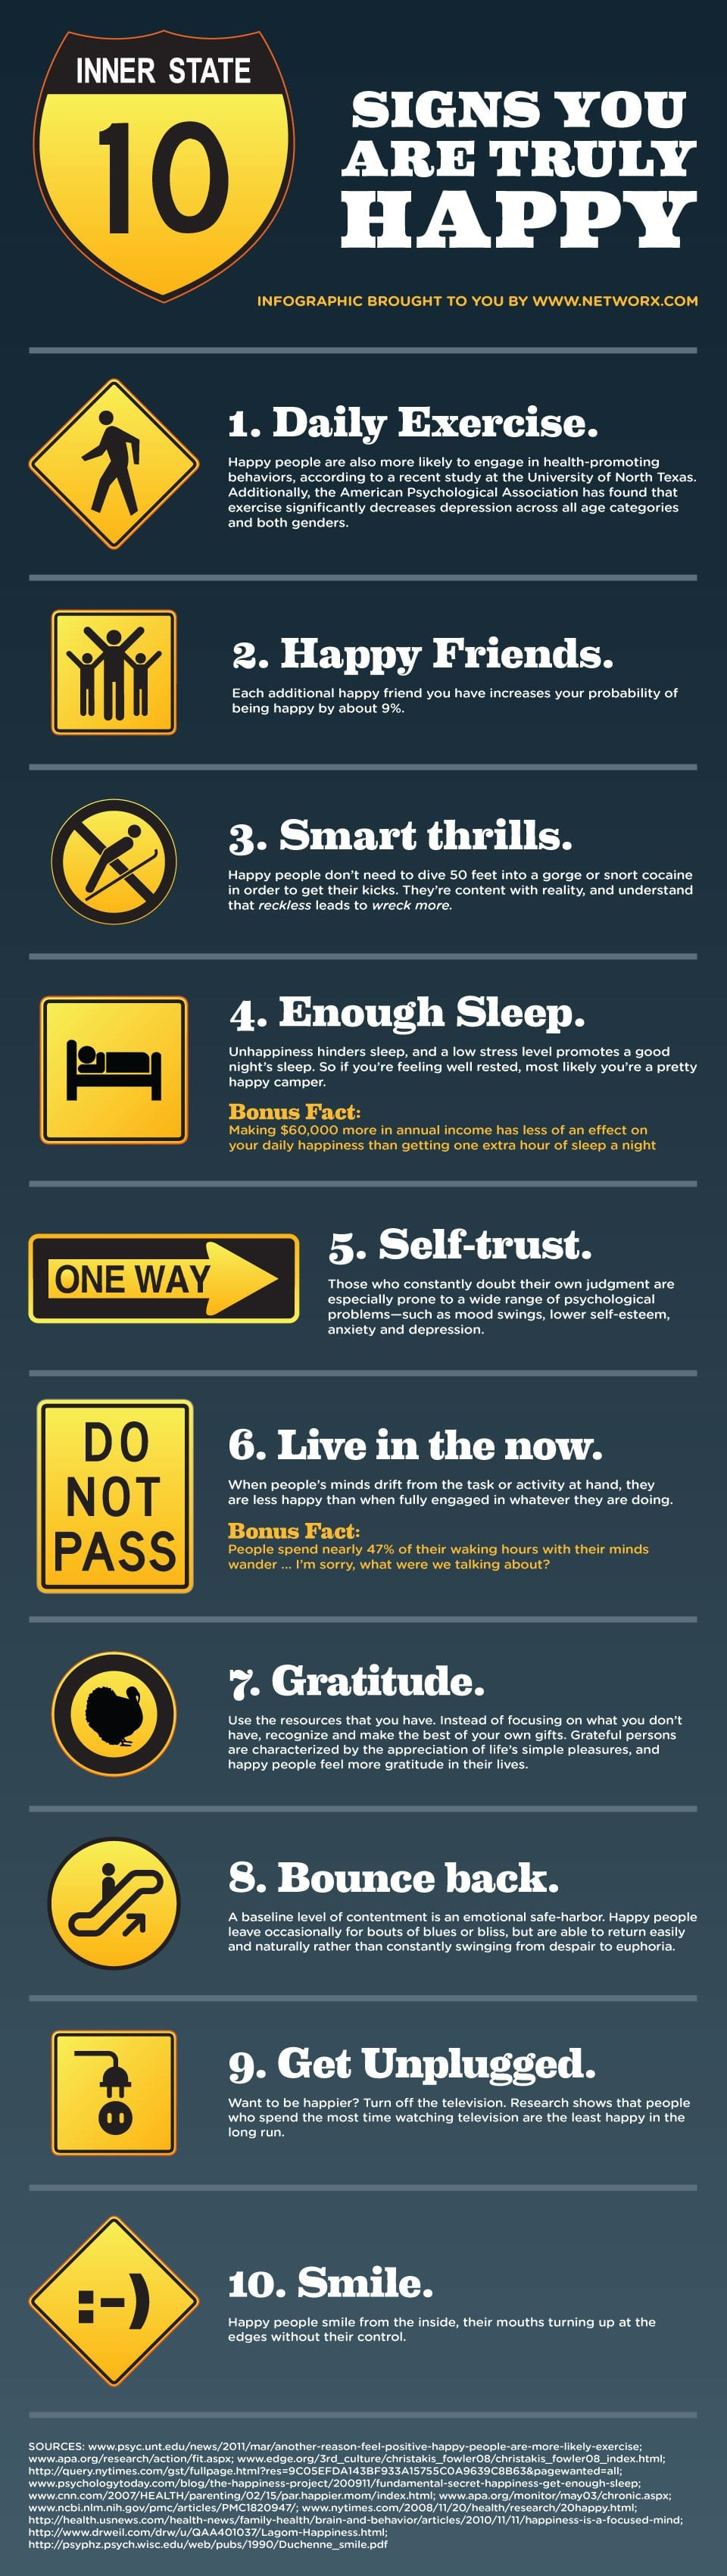 signs-you-are-happy-infographic